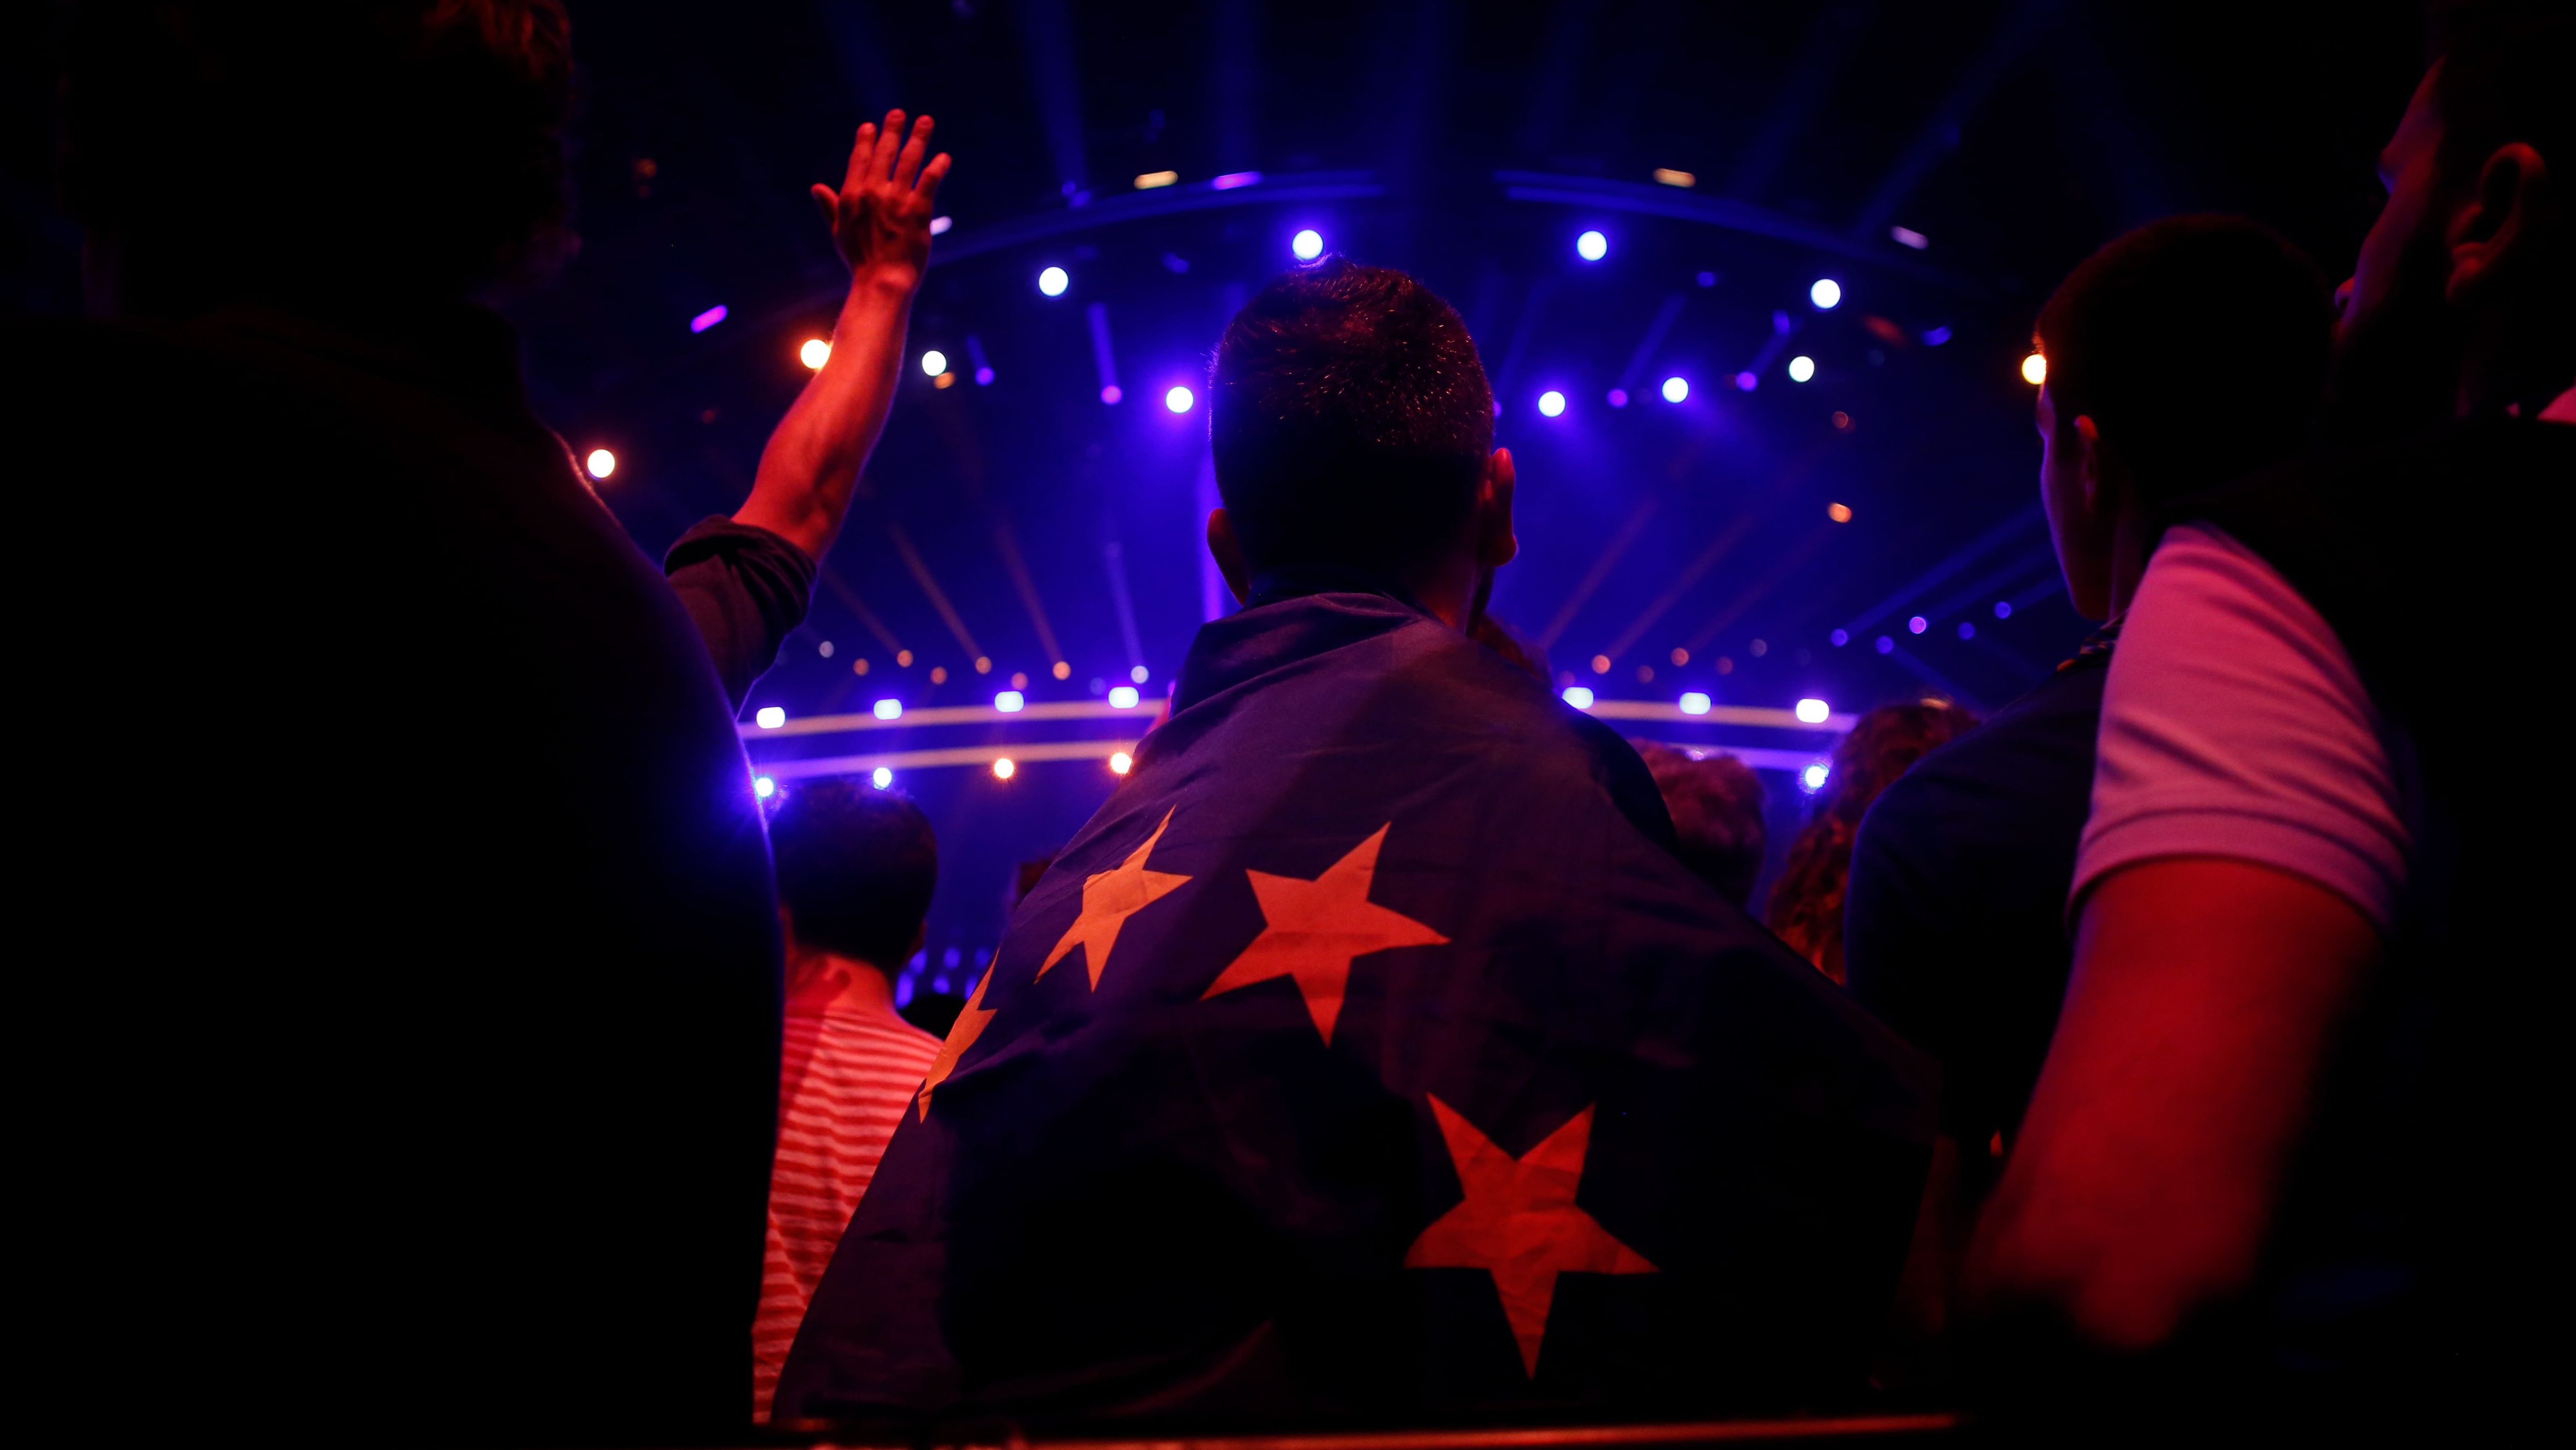 A spectator wears an European flag during the Eurovision Song Contest 2018 at the Altice Arena hall in Lisbon, Portugal, on May 10, 2018.